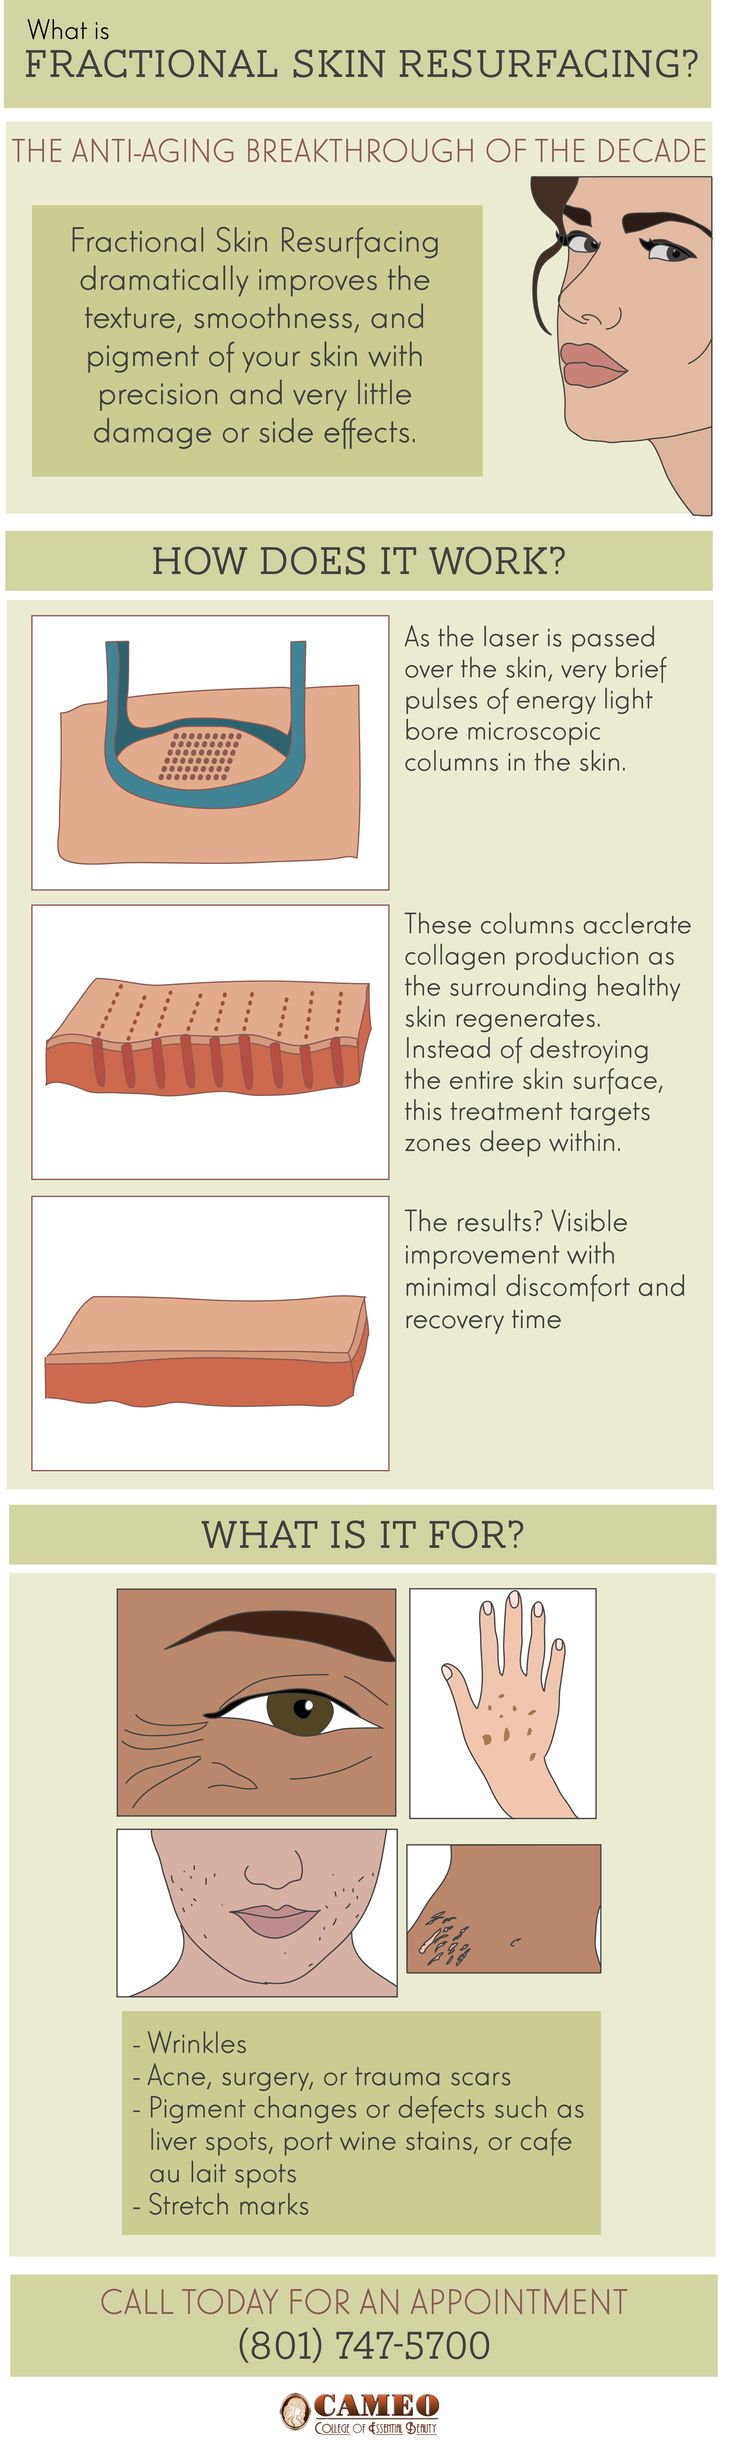 What is Fractional Skin Resurfacing? INFOGRAPHIC - #laserresurfacing #esthetics #cameocollege #esthetician